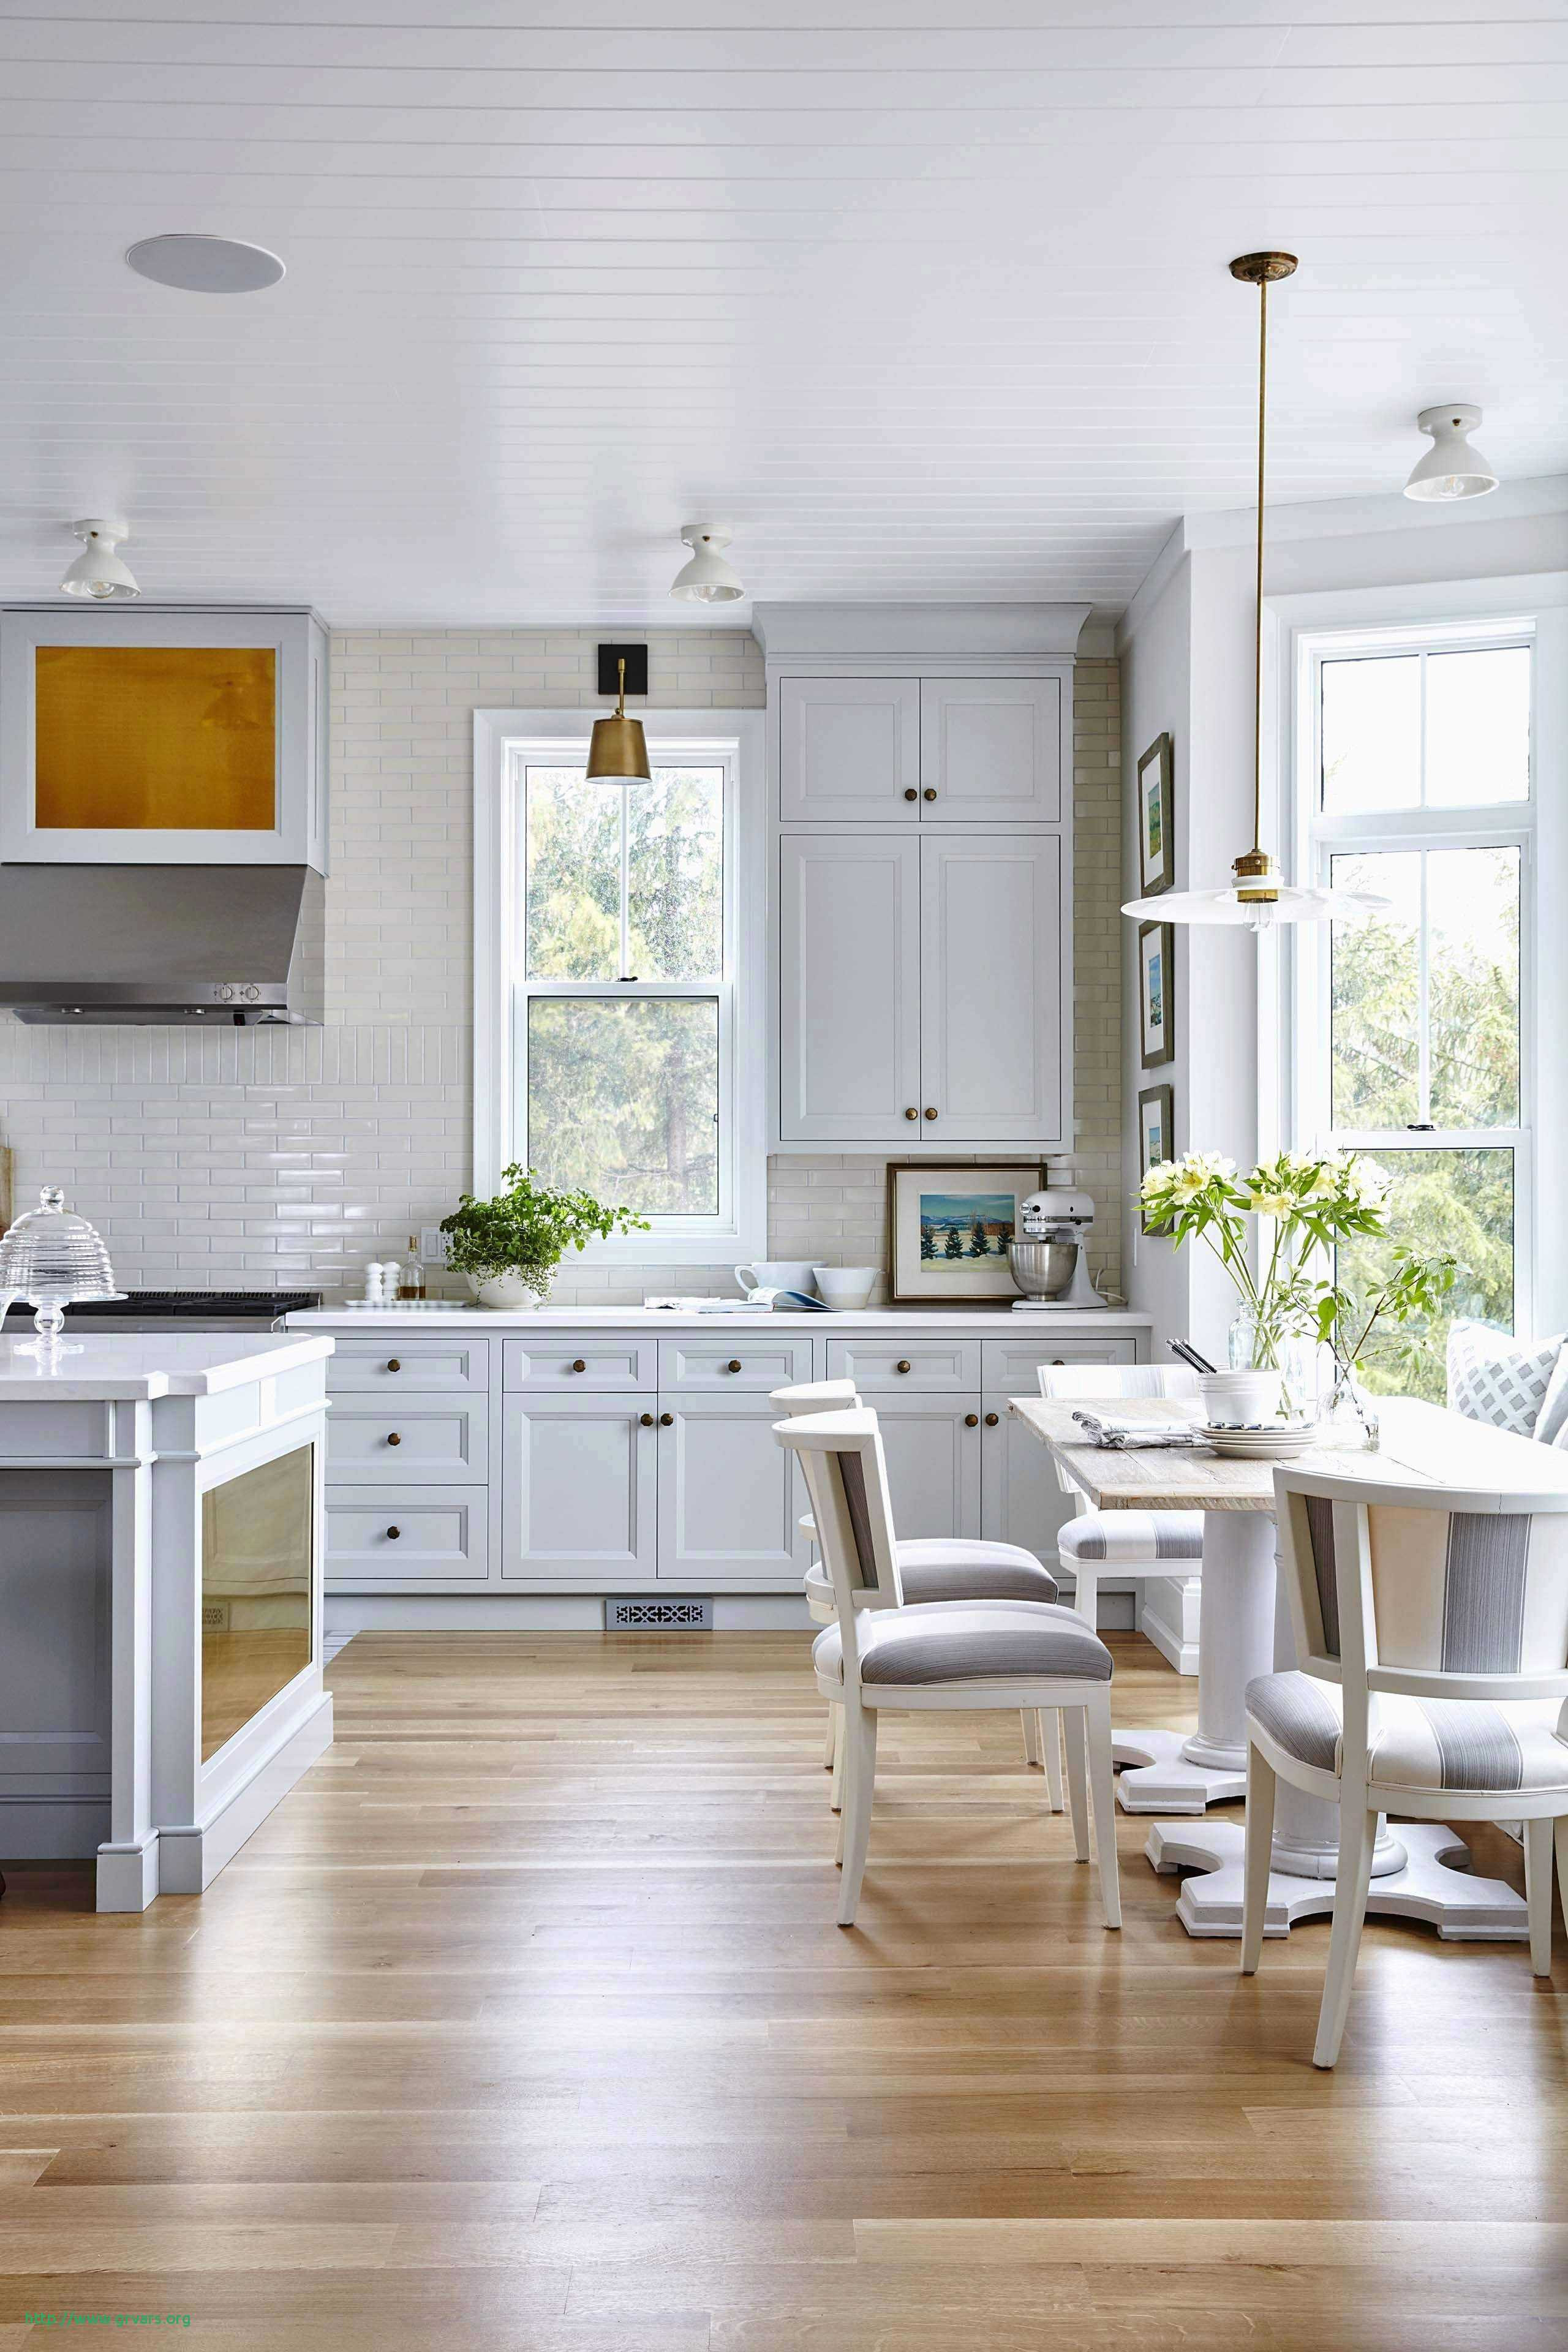 rona hardwood flooring reviews of 25 inspirant installing laminate flooring in kitchen under the inside upgrade laminate kitchen cabinets new kitchen joys kitchen joys kitchen 0d kitchens inspiration small